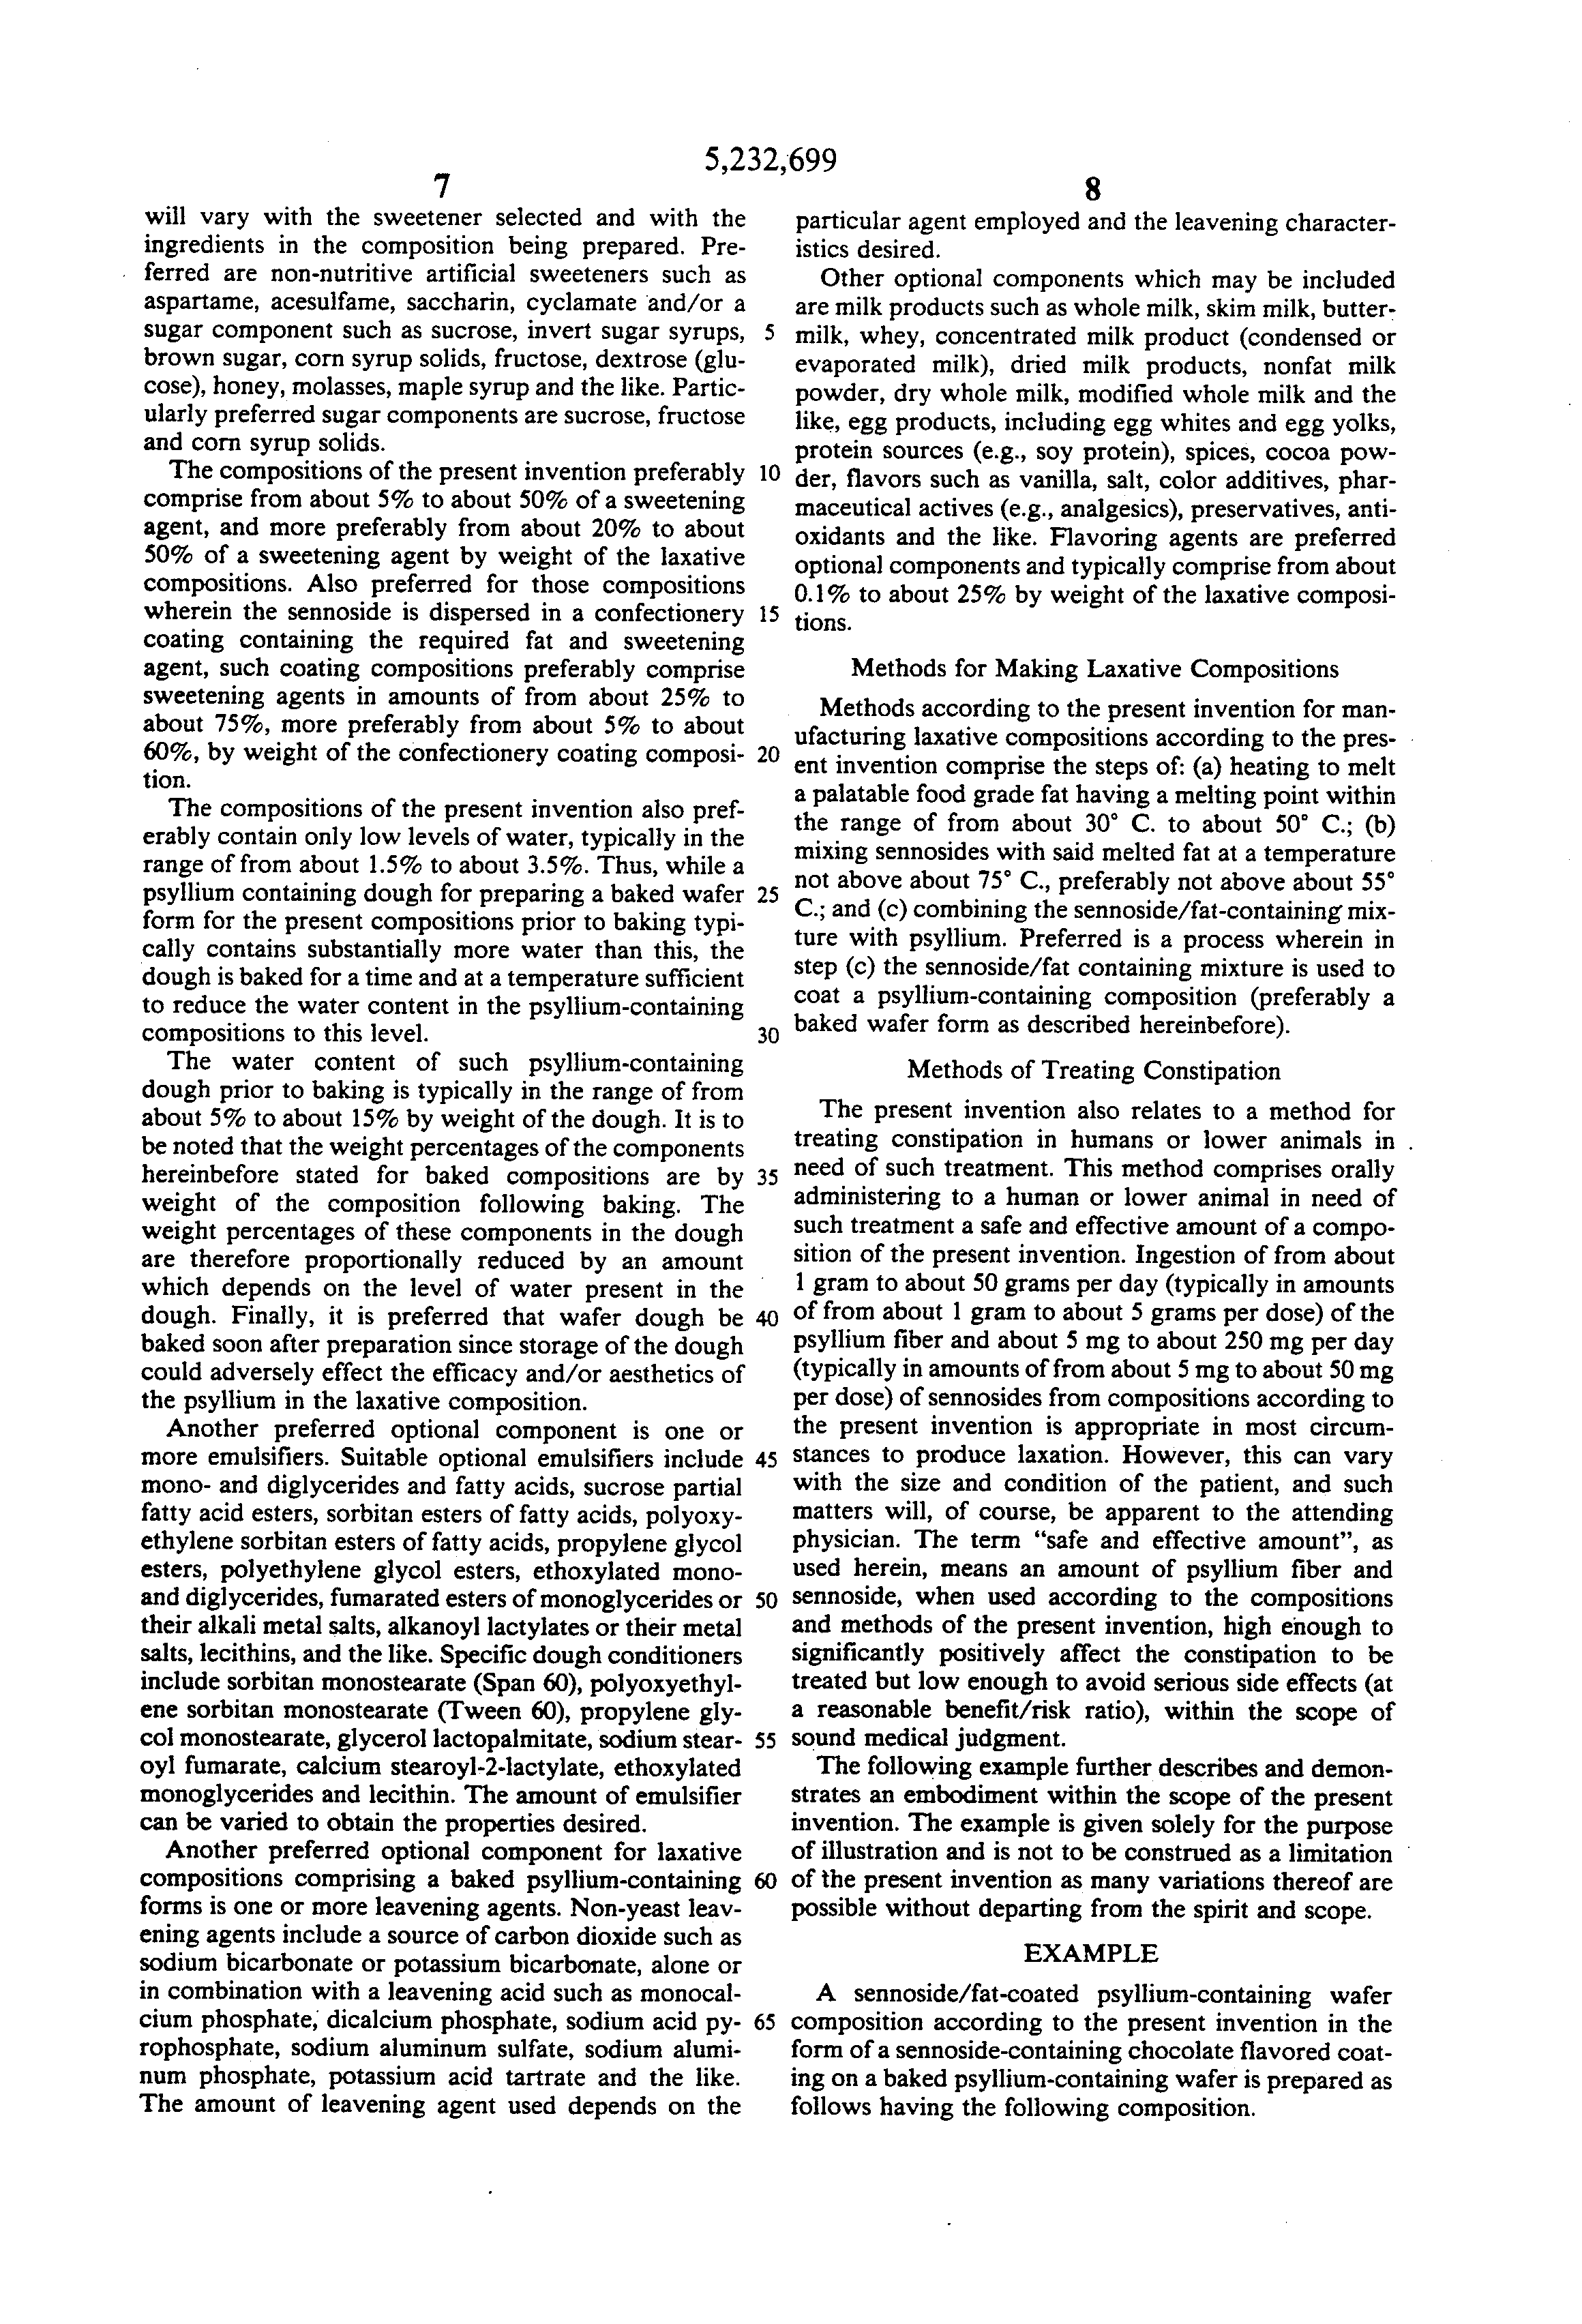 patent us laxative compositions patents patent drawing